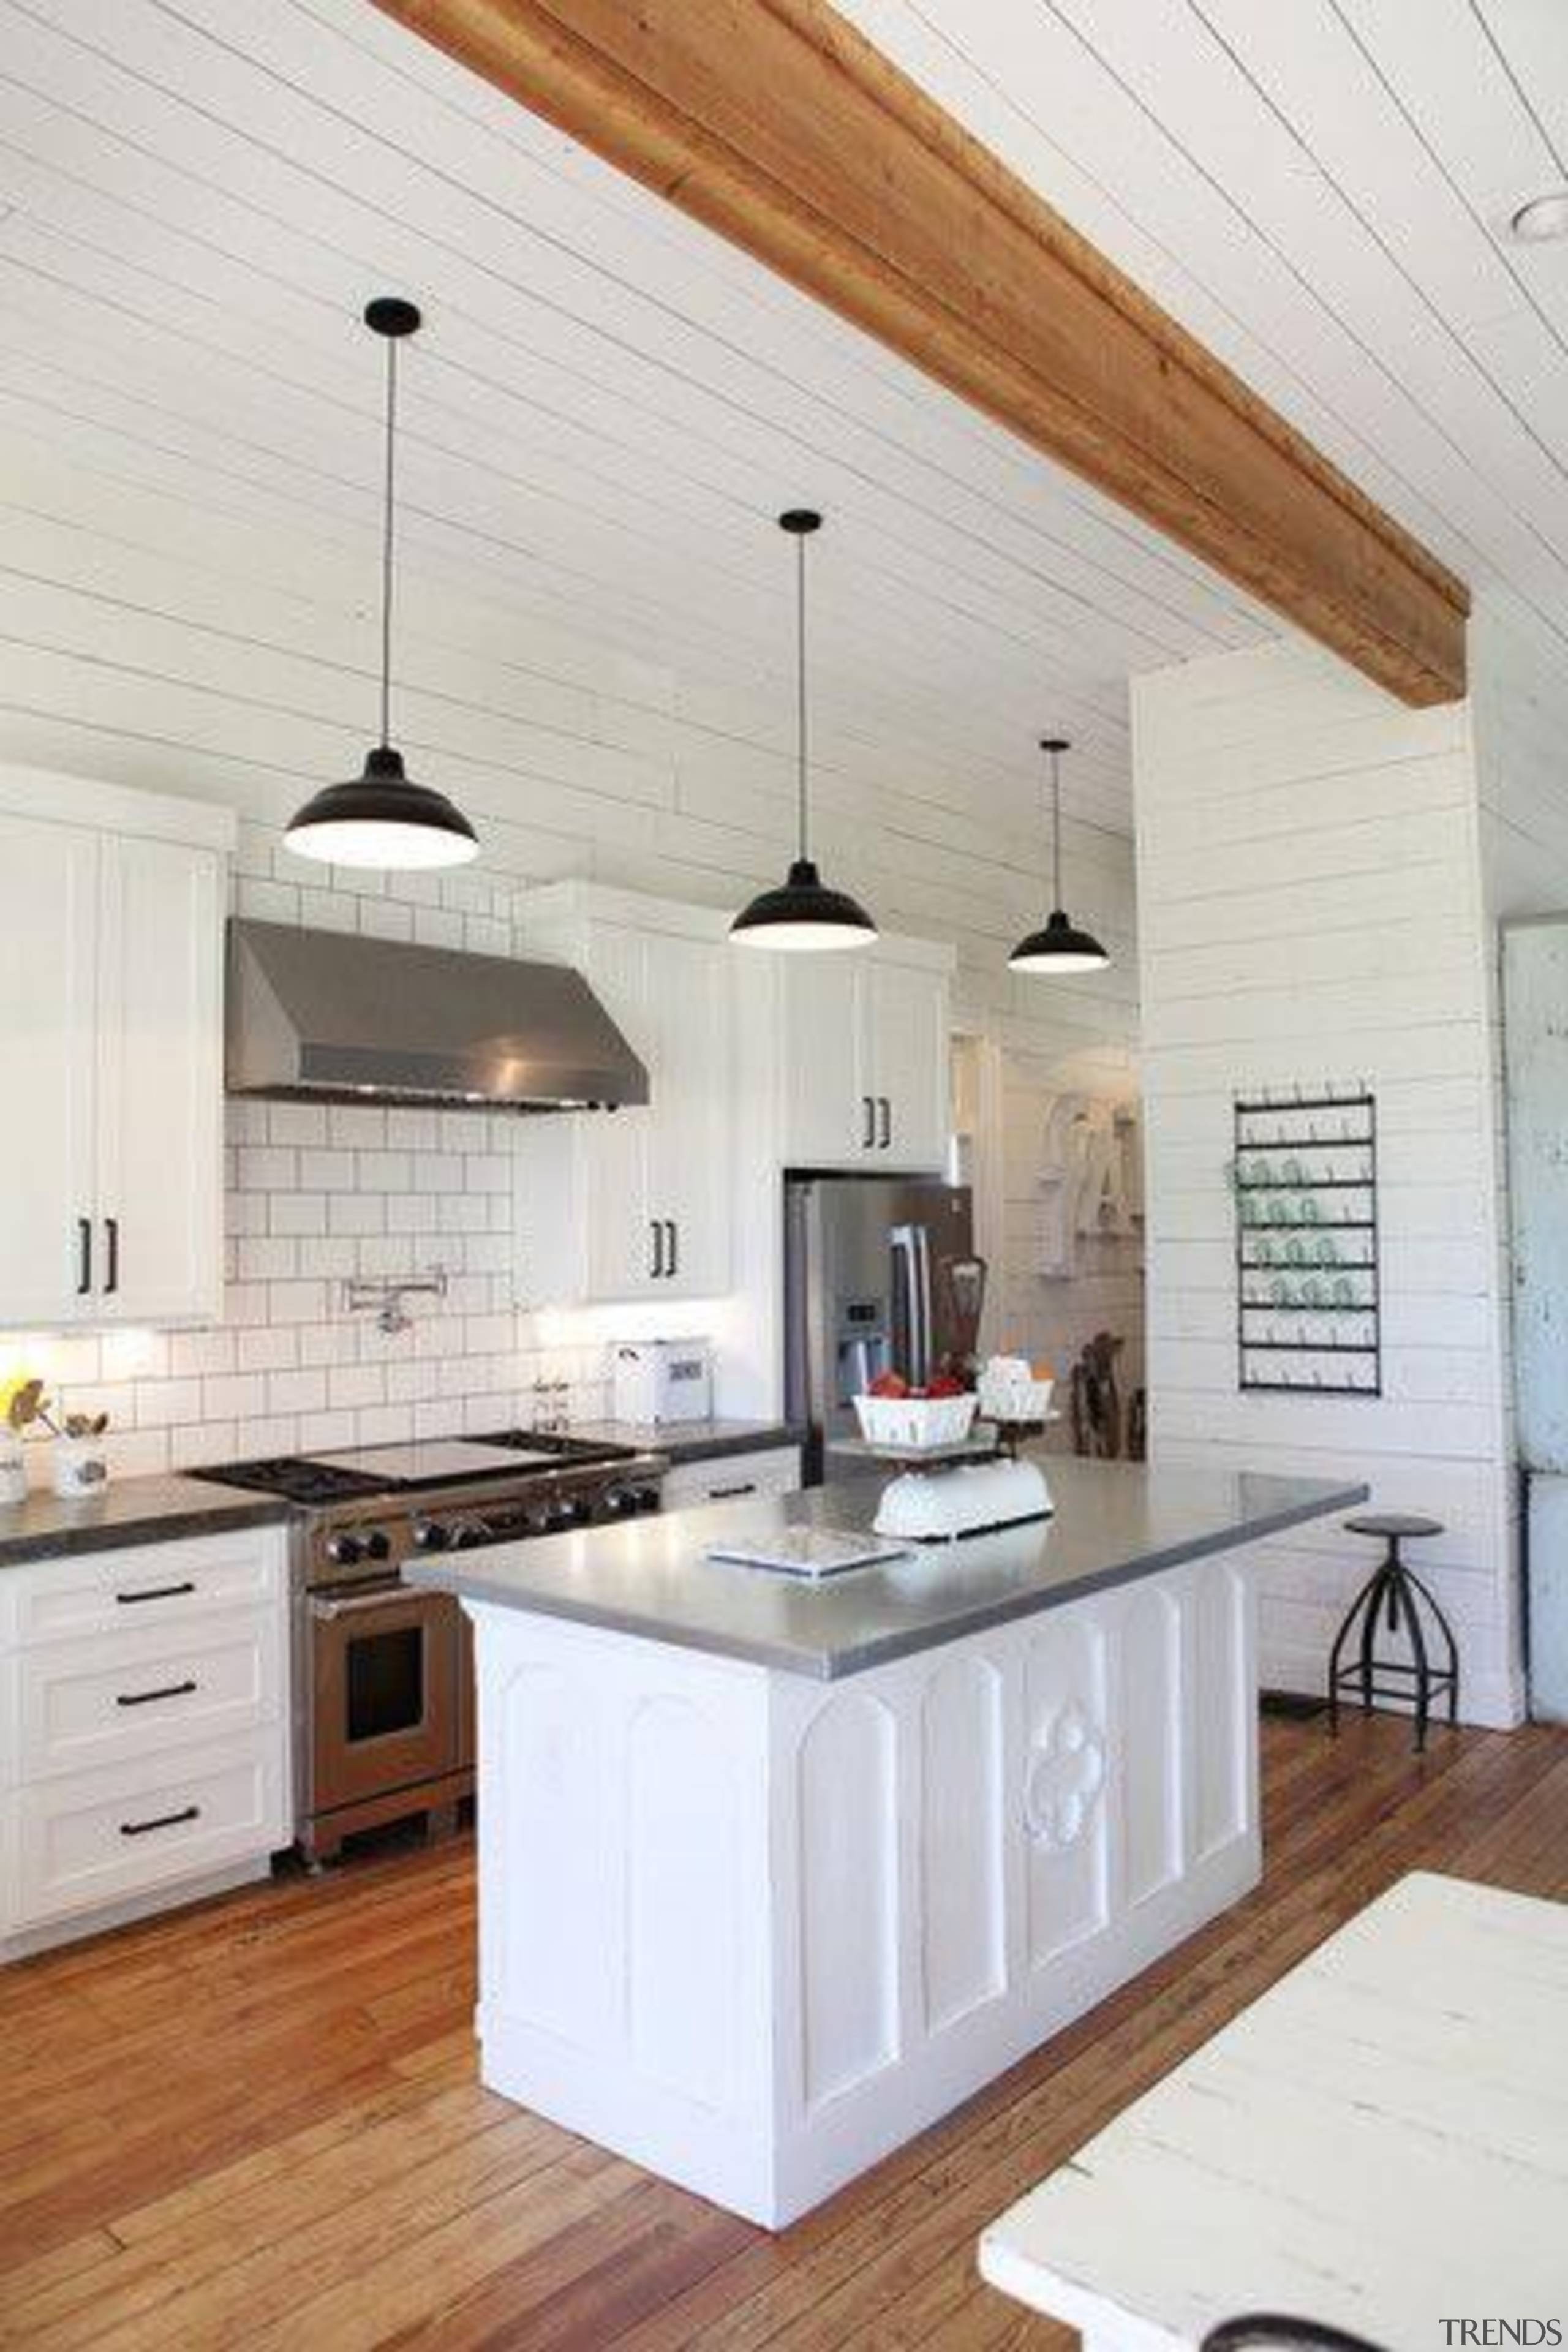 White with touch of woodStart a myTrends ProjectCreate cabinetry, ceiling, countertop, cuisine classique, floor, flooring, home, interior design, kitchen, room, white